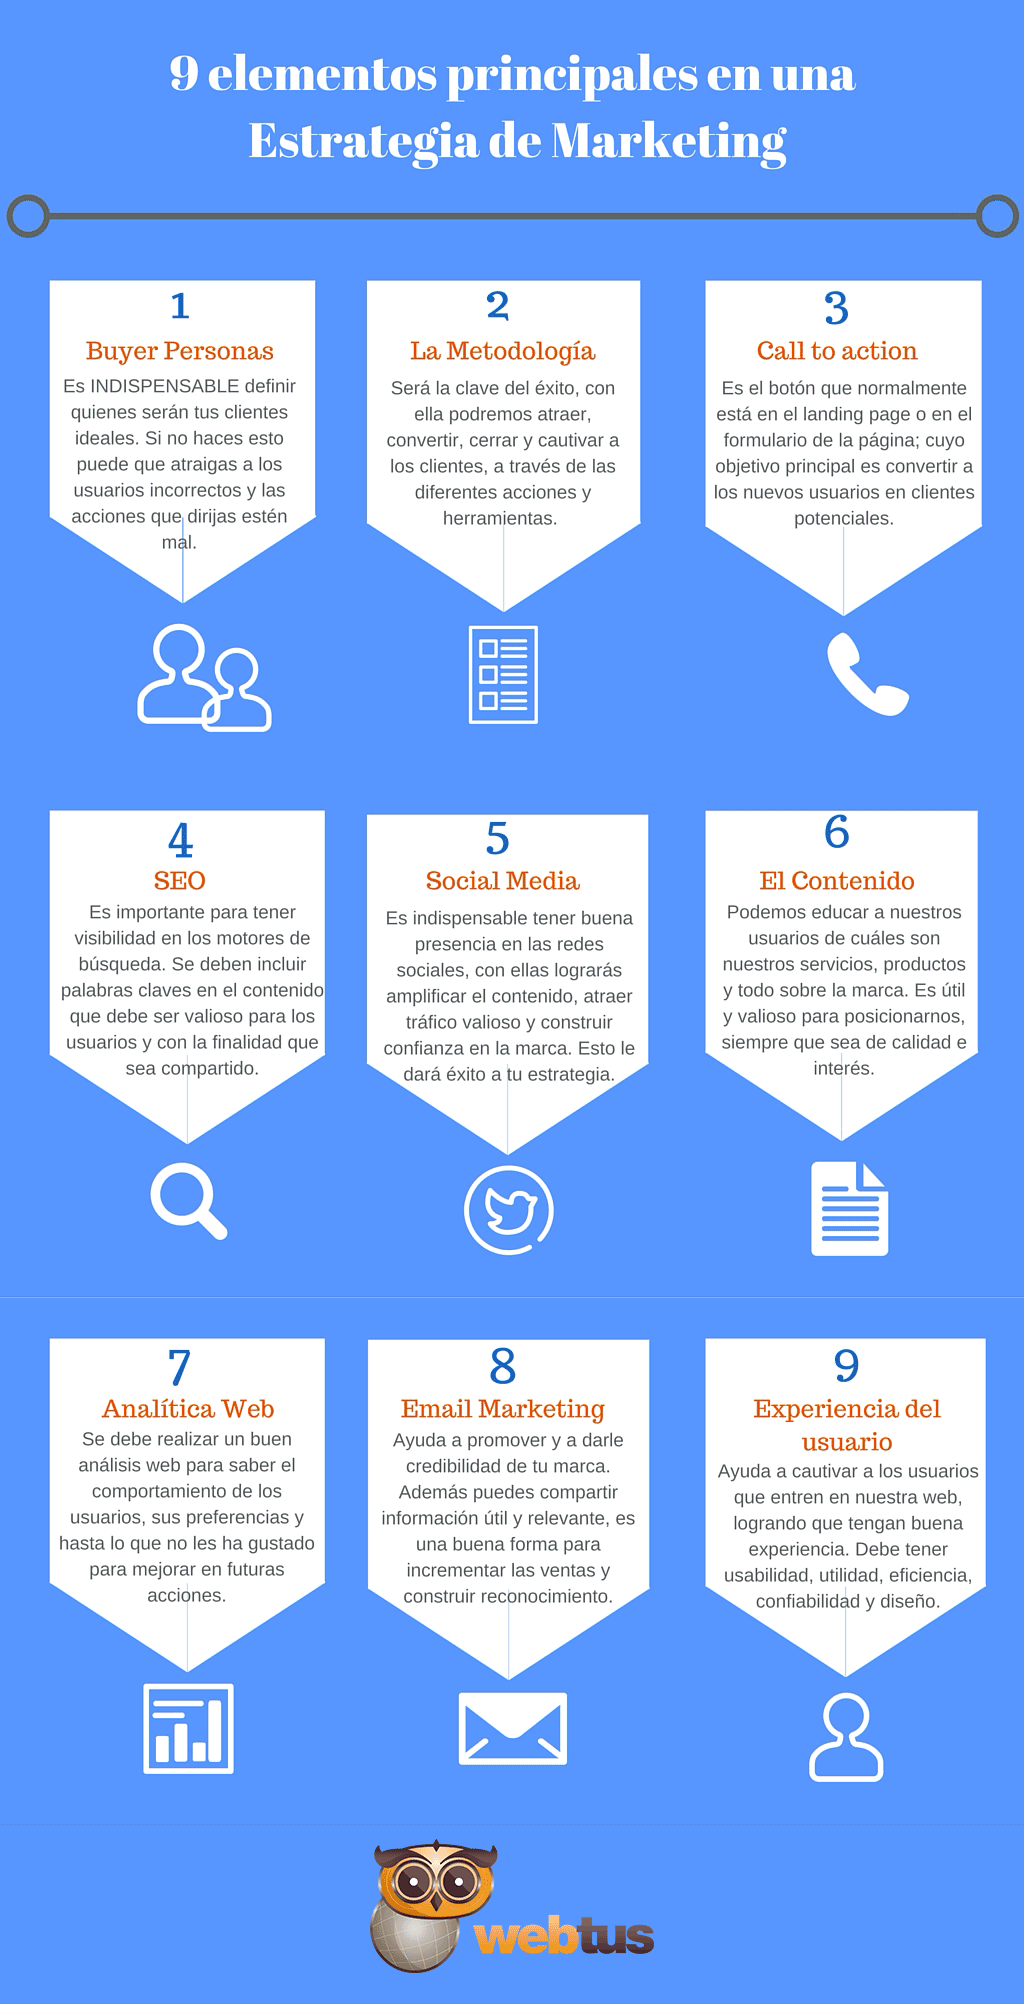 9-elementos-principales-en-una-Estrategia-de-Marketing